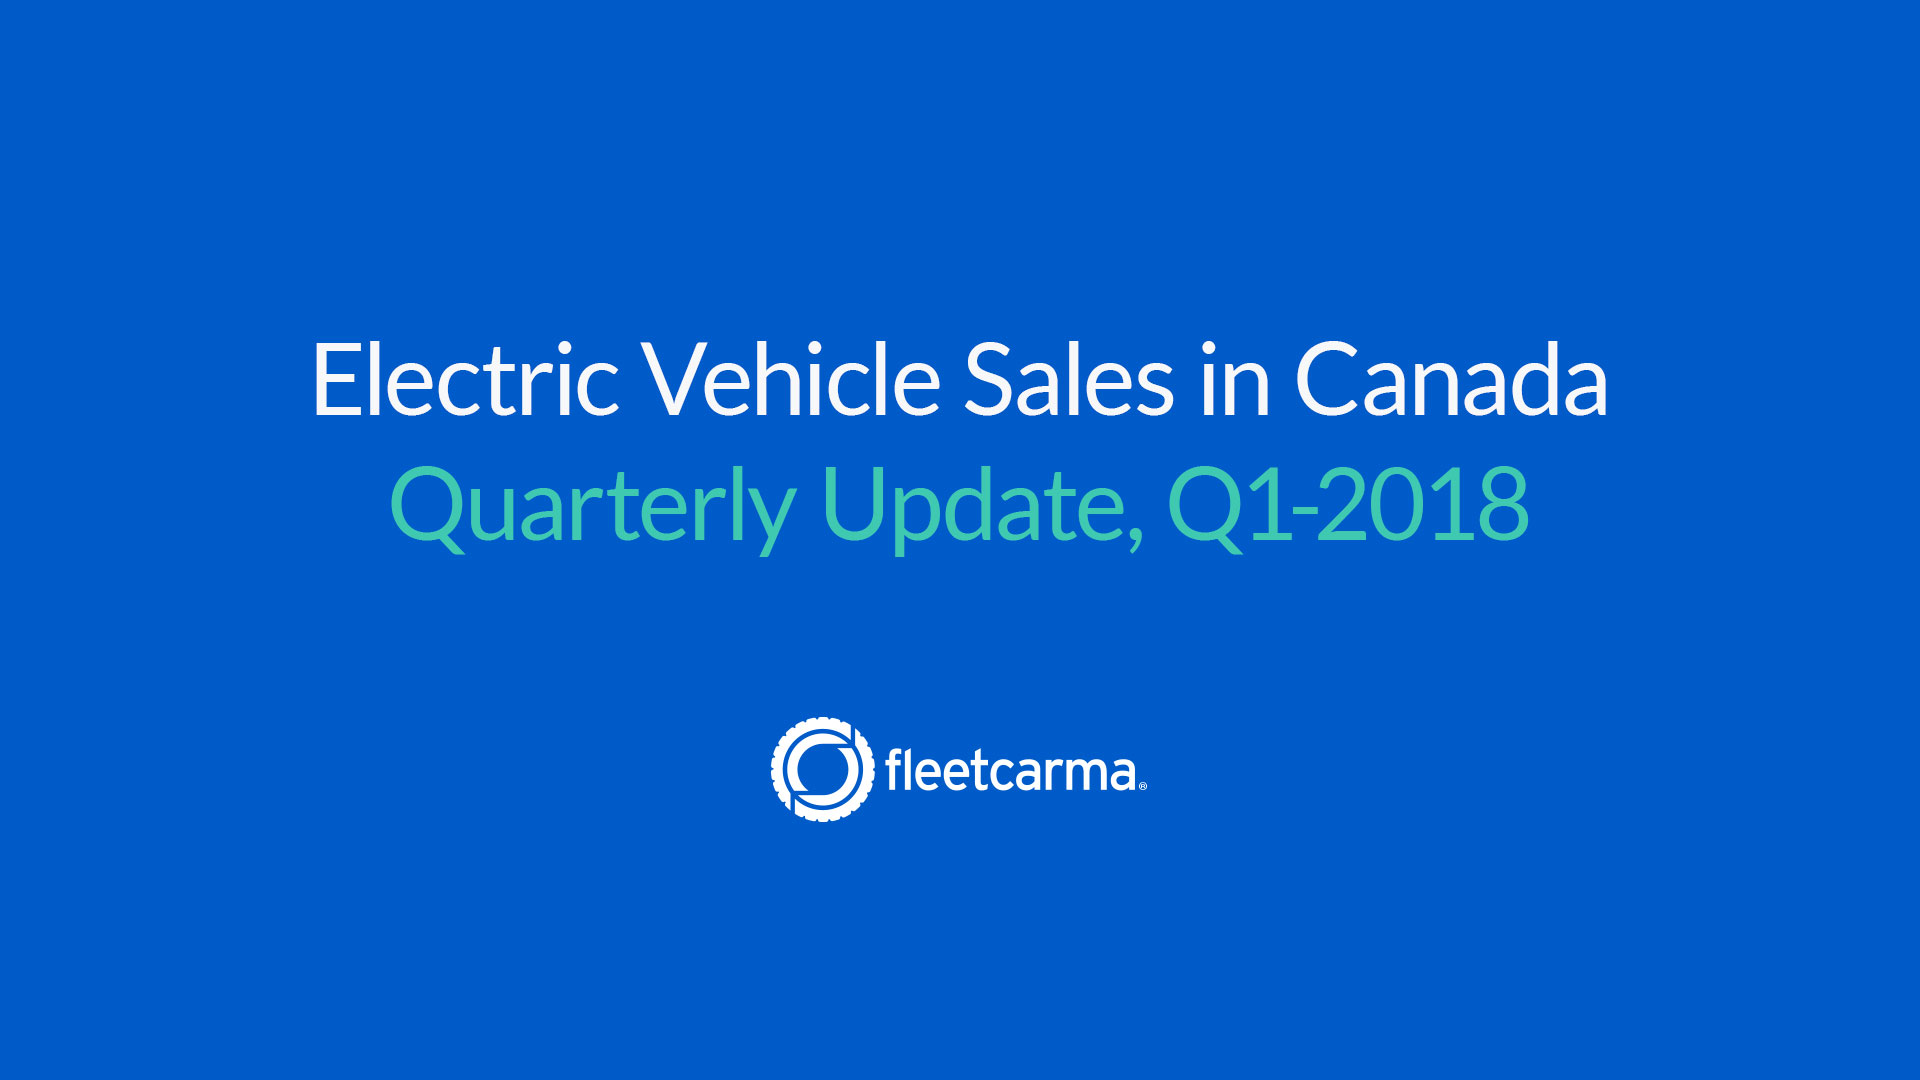 Electric vehicles sales update Q1 2018, Canada